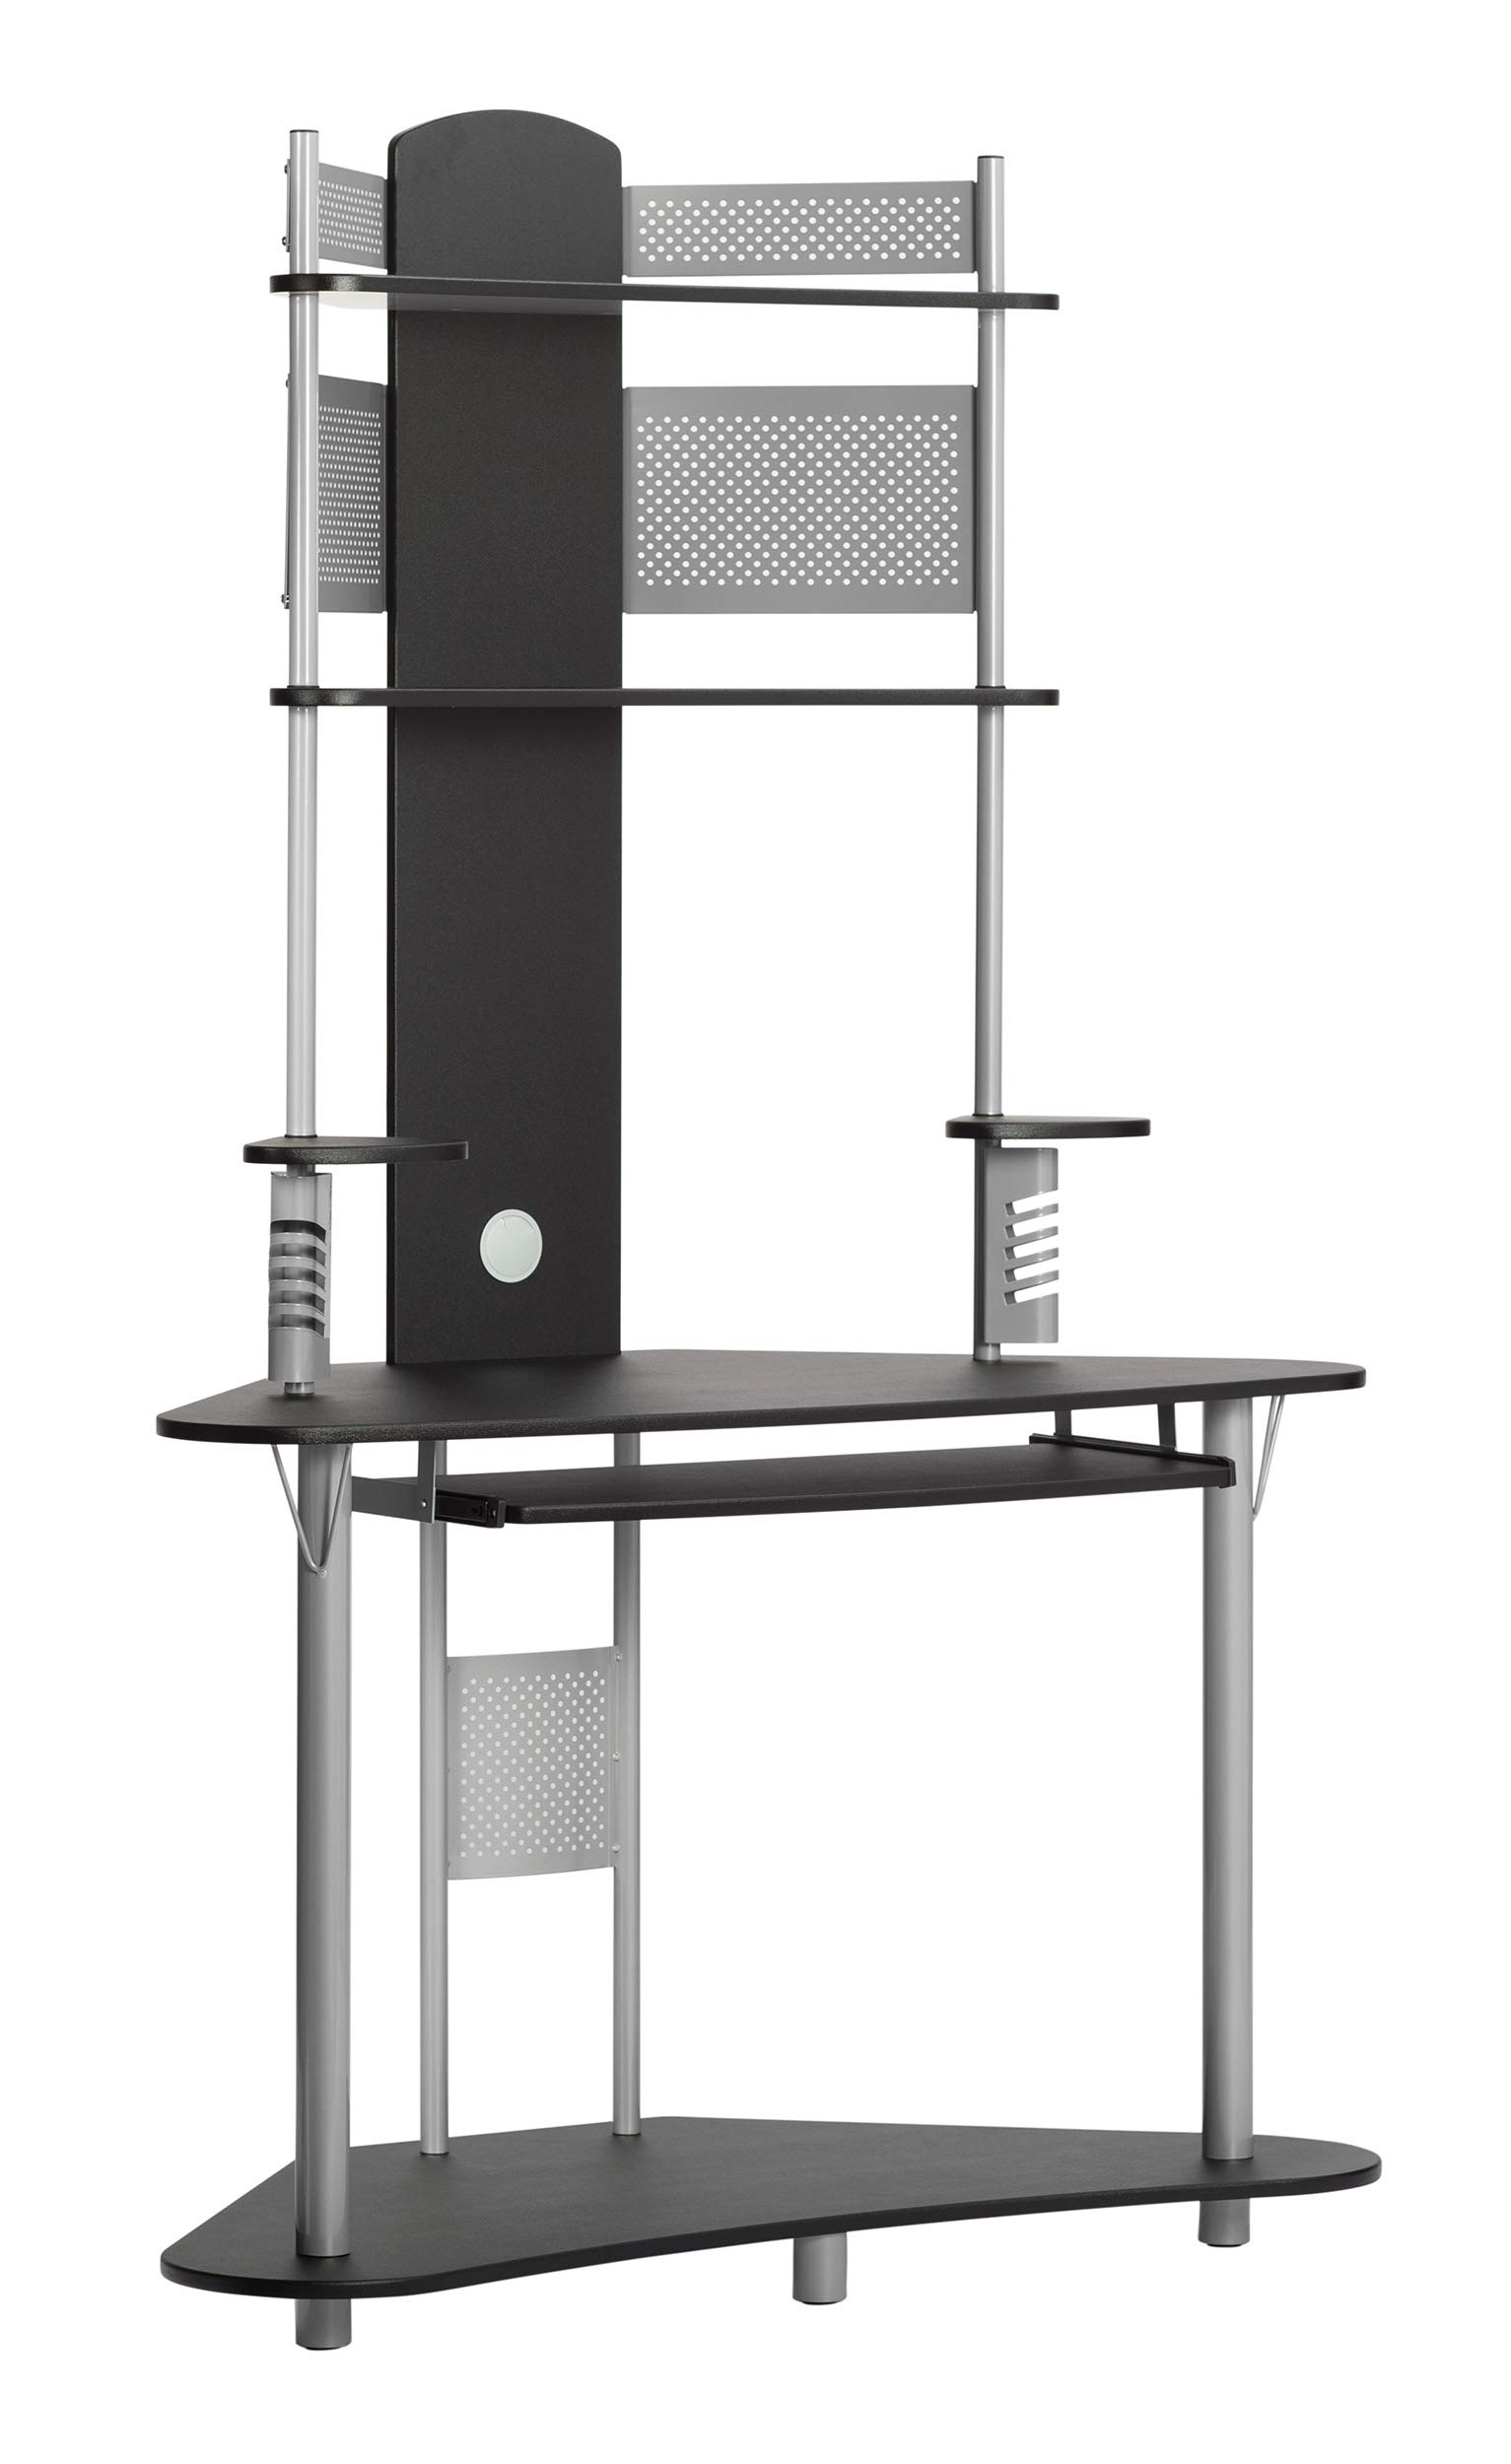 Calico Designs Arch Tower Corner Computer Tower Multipurpose Home Office Computer Writing Desk - Silver / Black, 50510